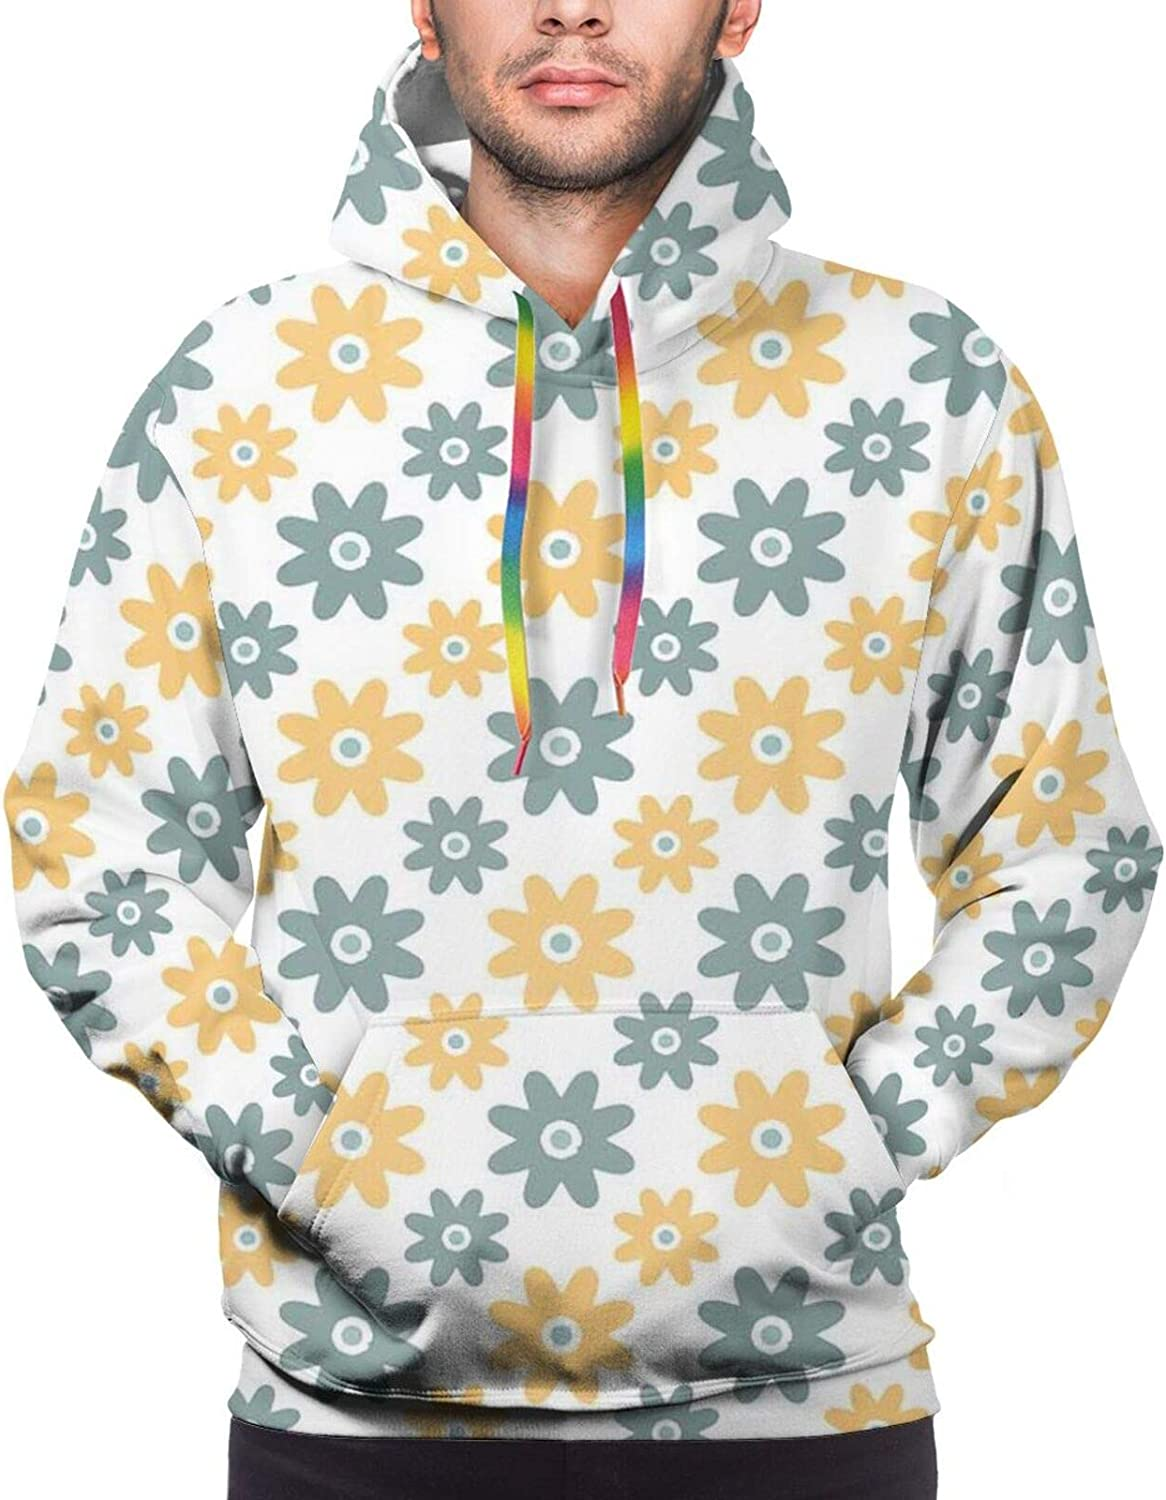 Men's Hoodies Sweatshirts,Lively Colors Cartoon Arrows with Geometric Shapes Kiss Hearts Phrase